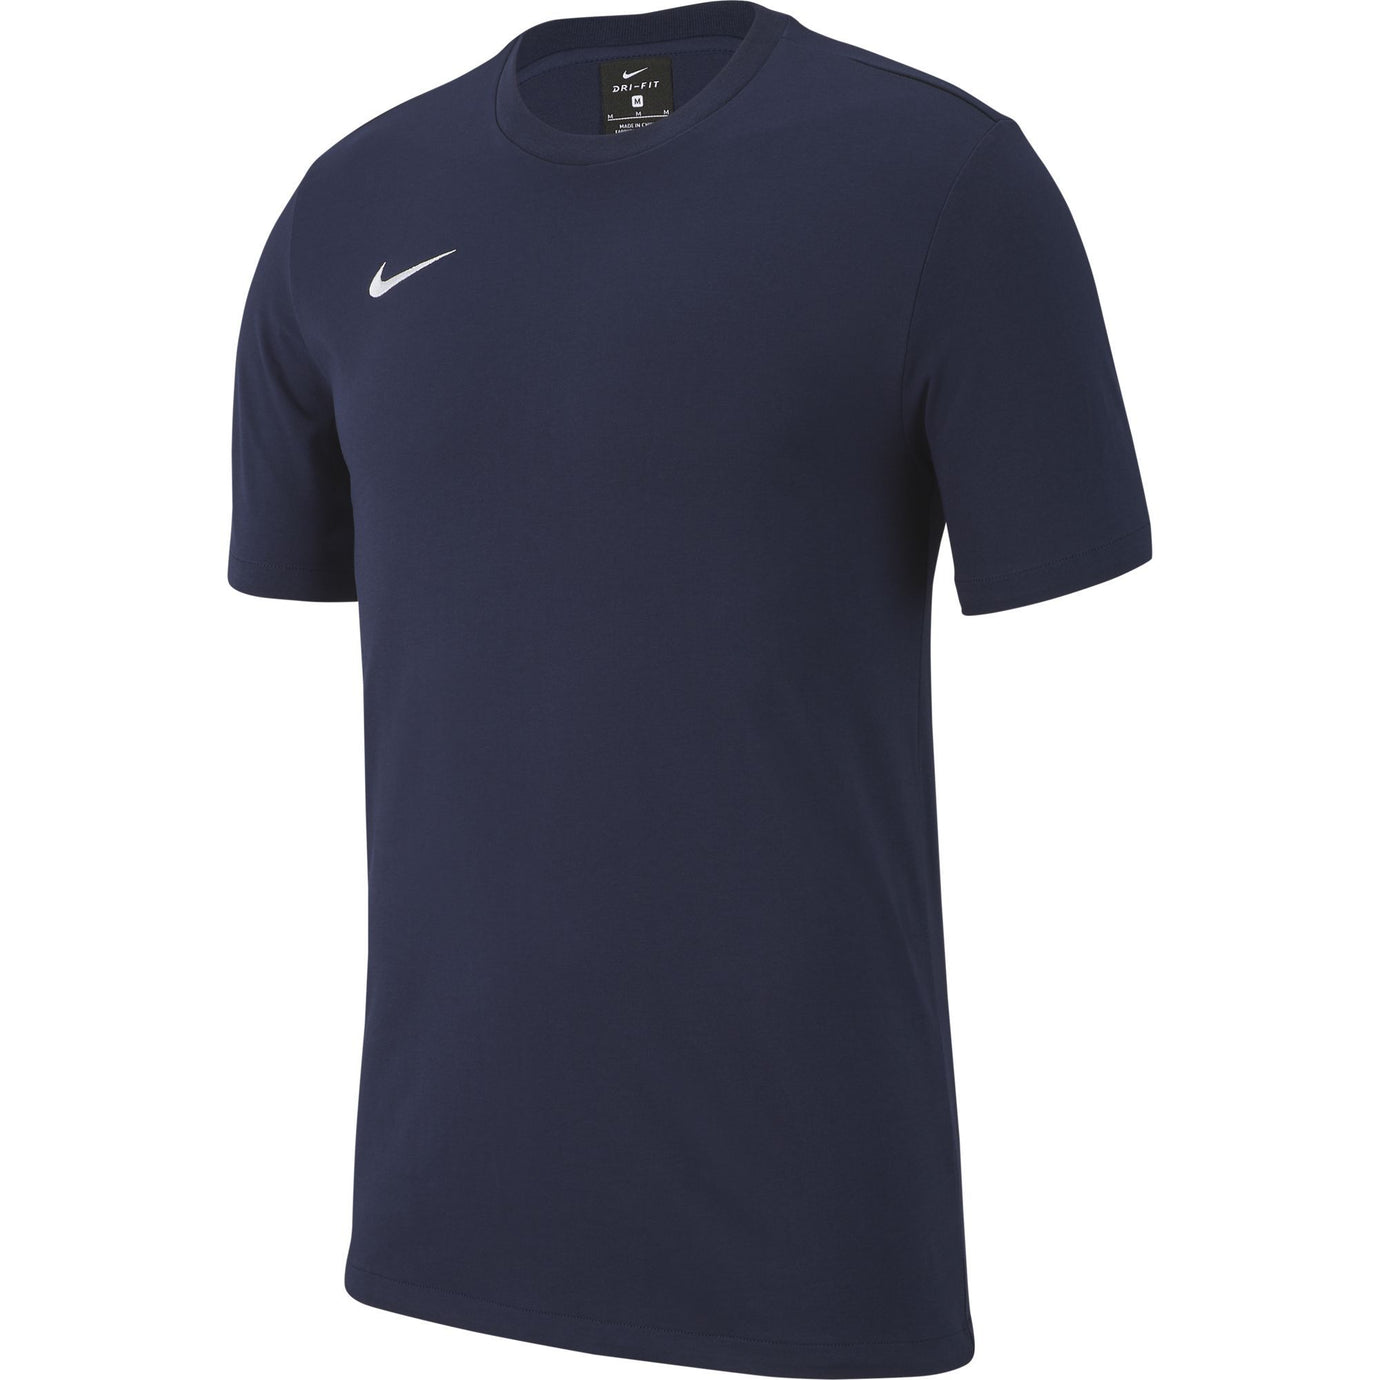 NIKE TEAM CLUB 19 TEE OBSIDIAN